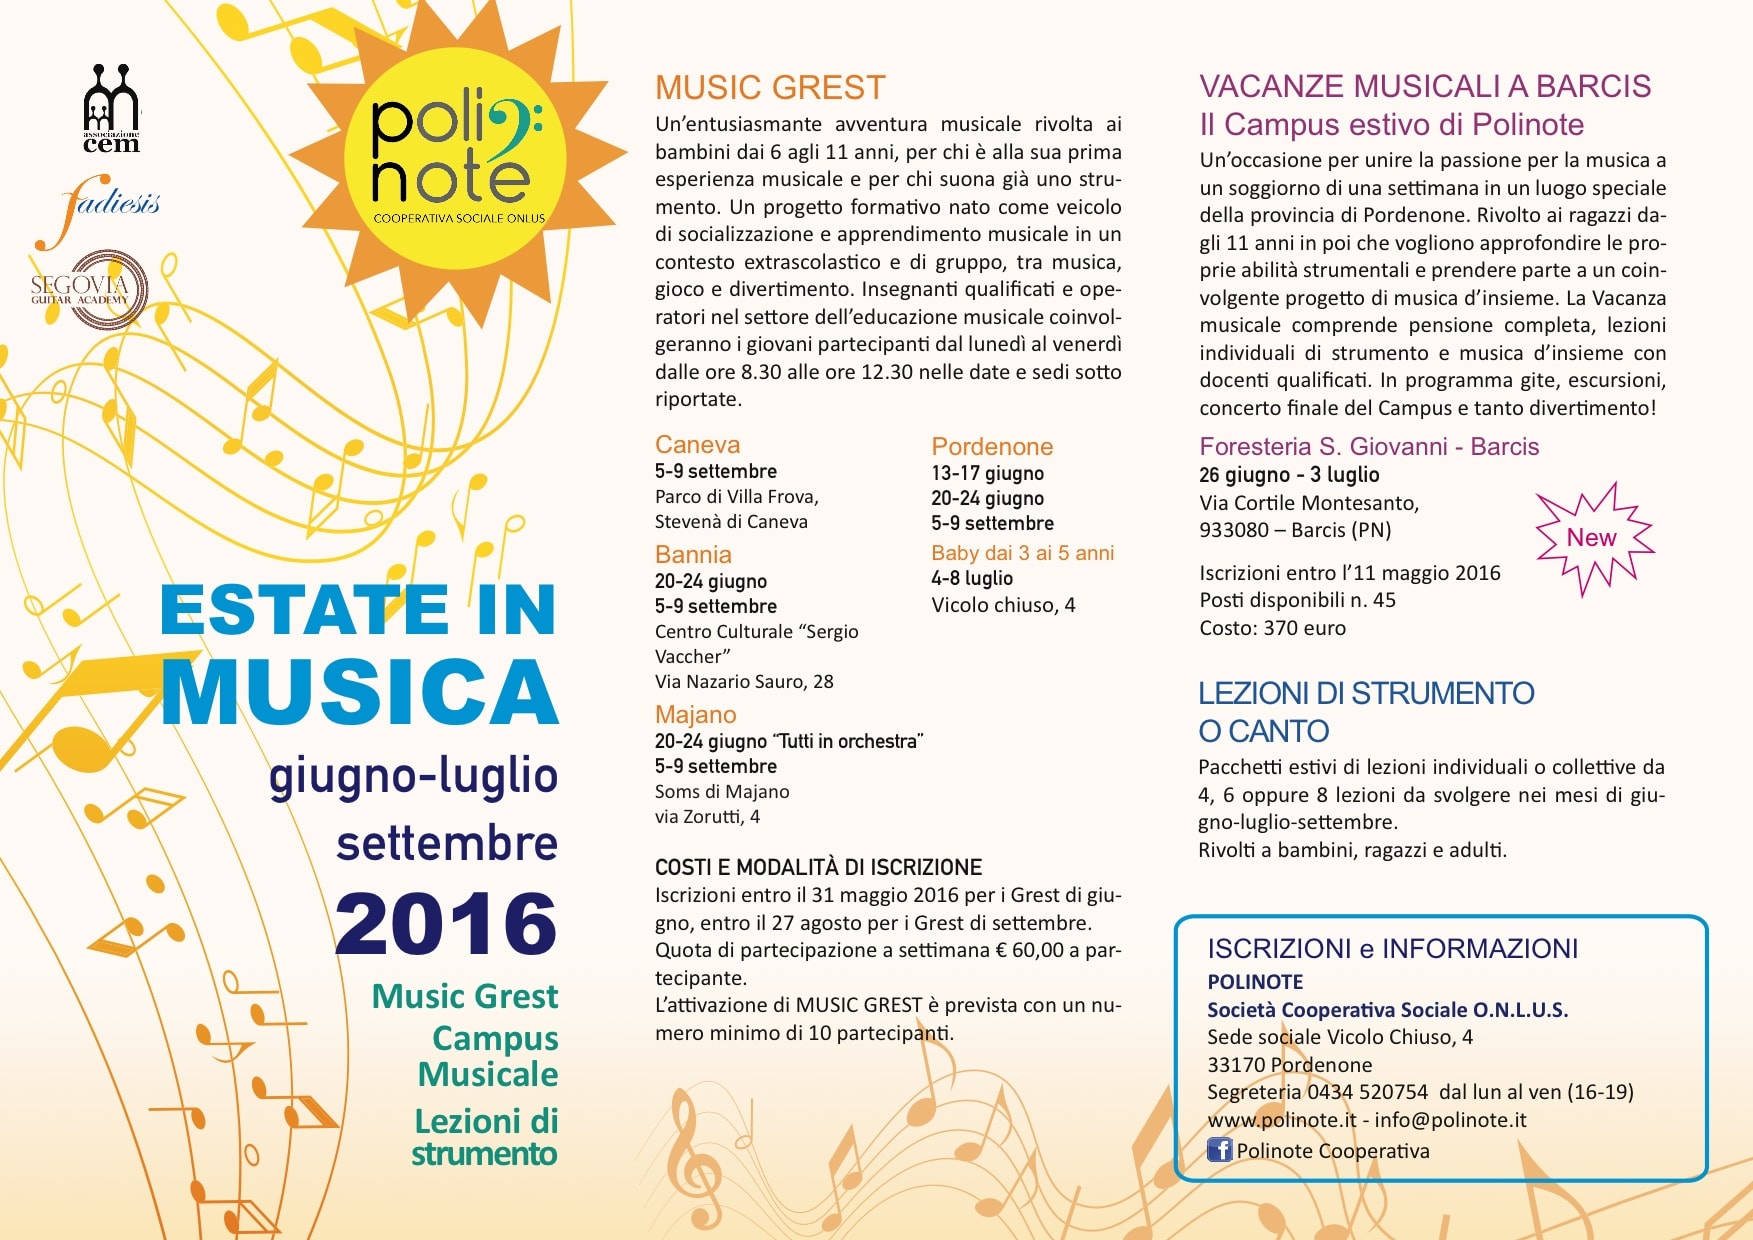 Estate-in-musica-2016-A4